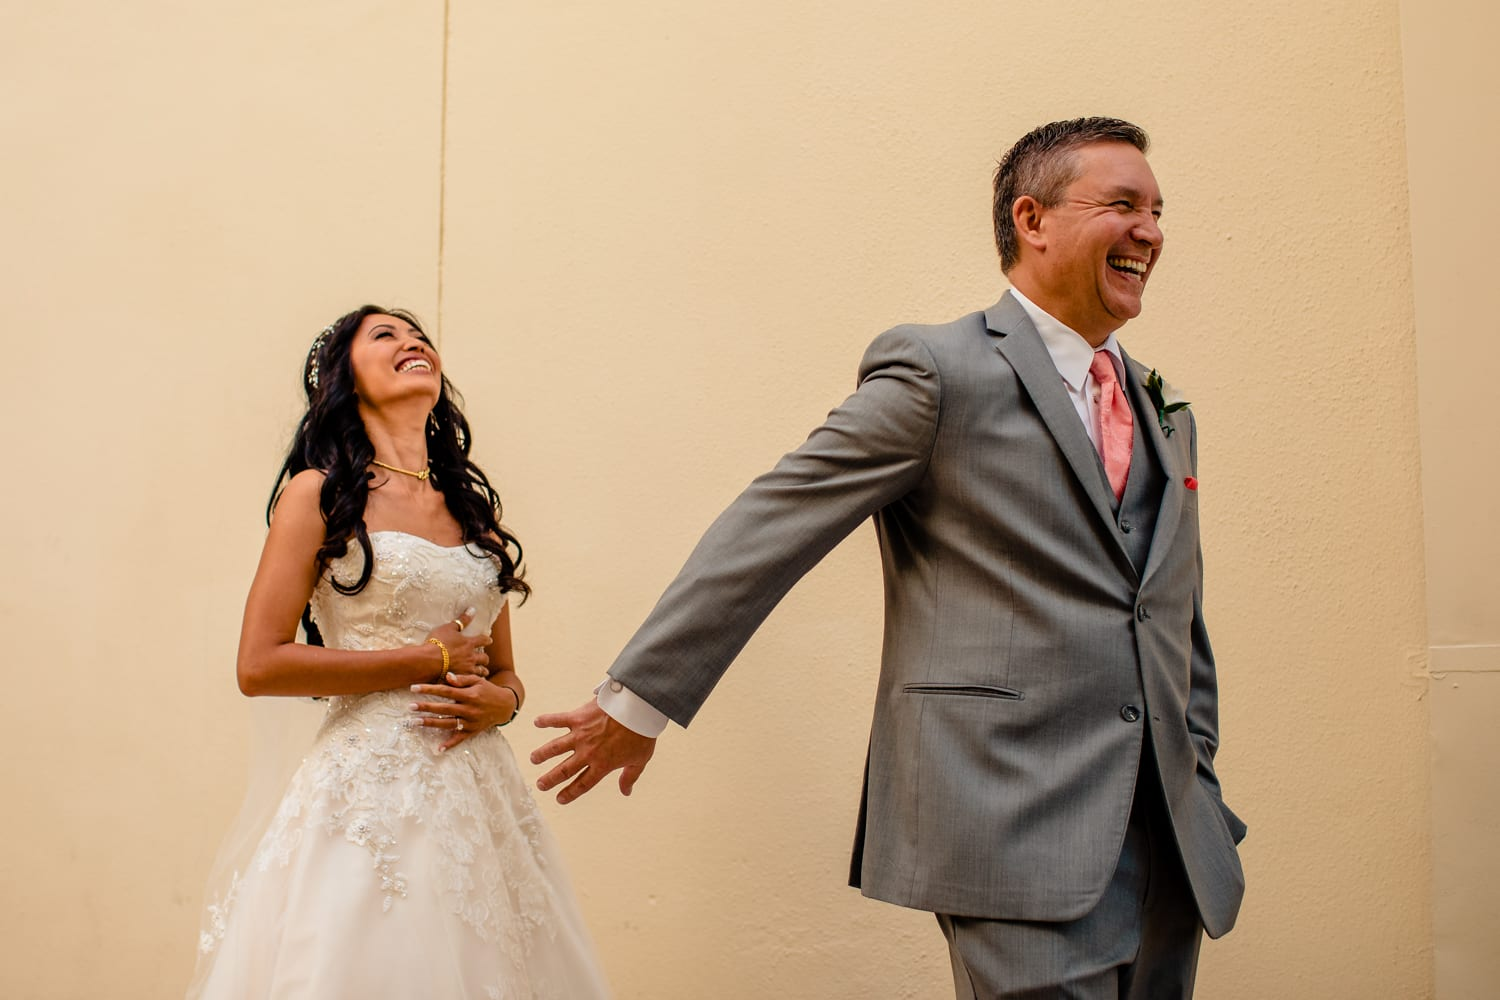 Couple Act Playfully Post Wedding Ceremony